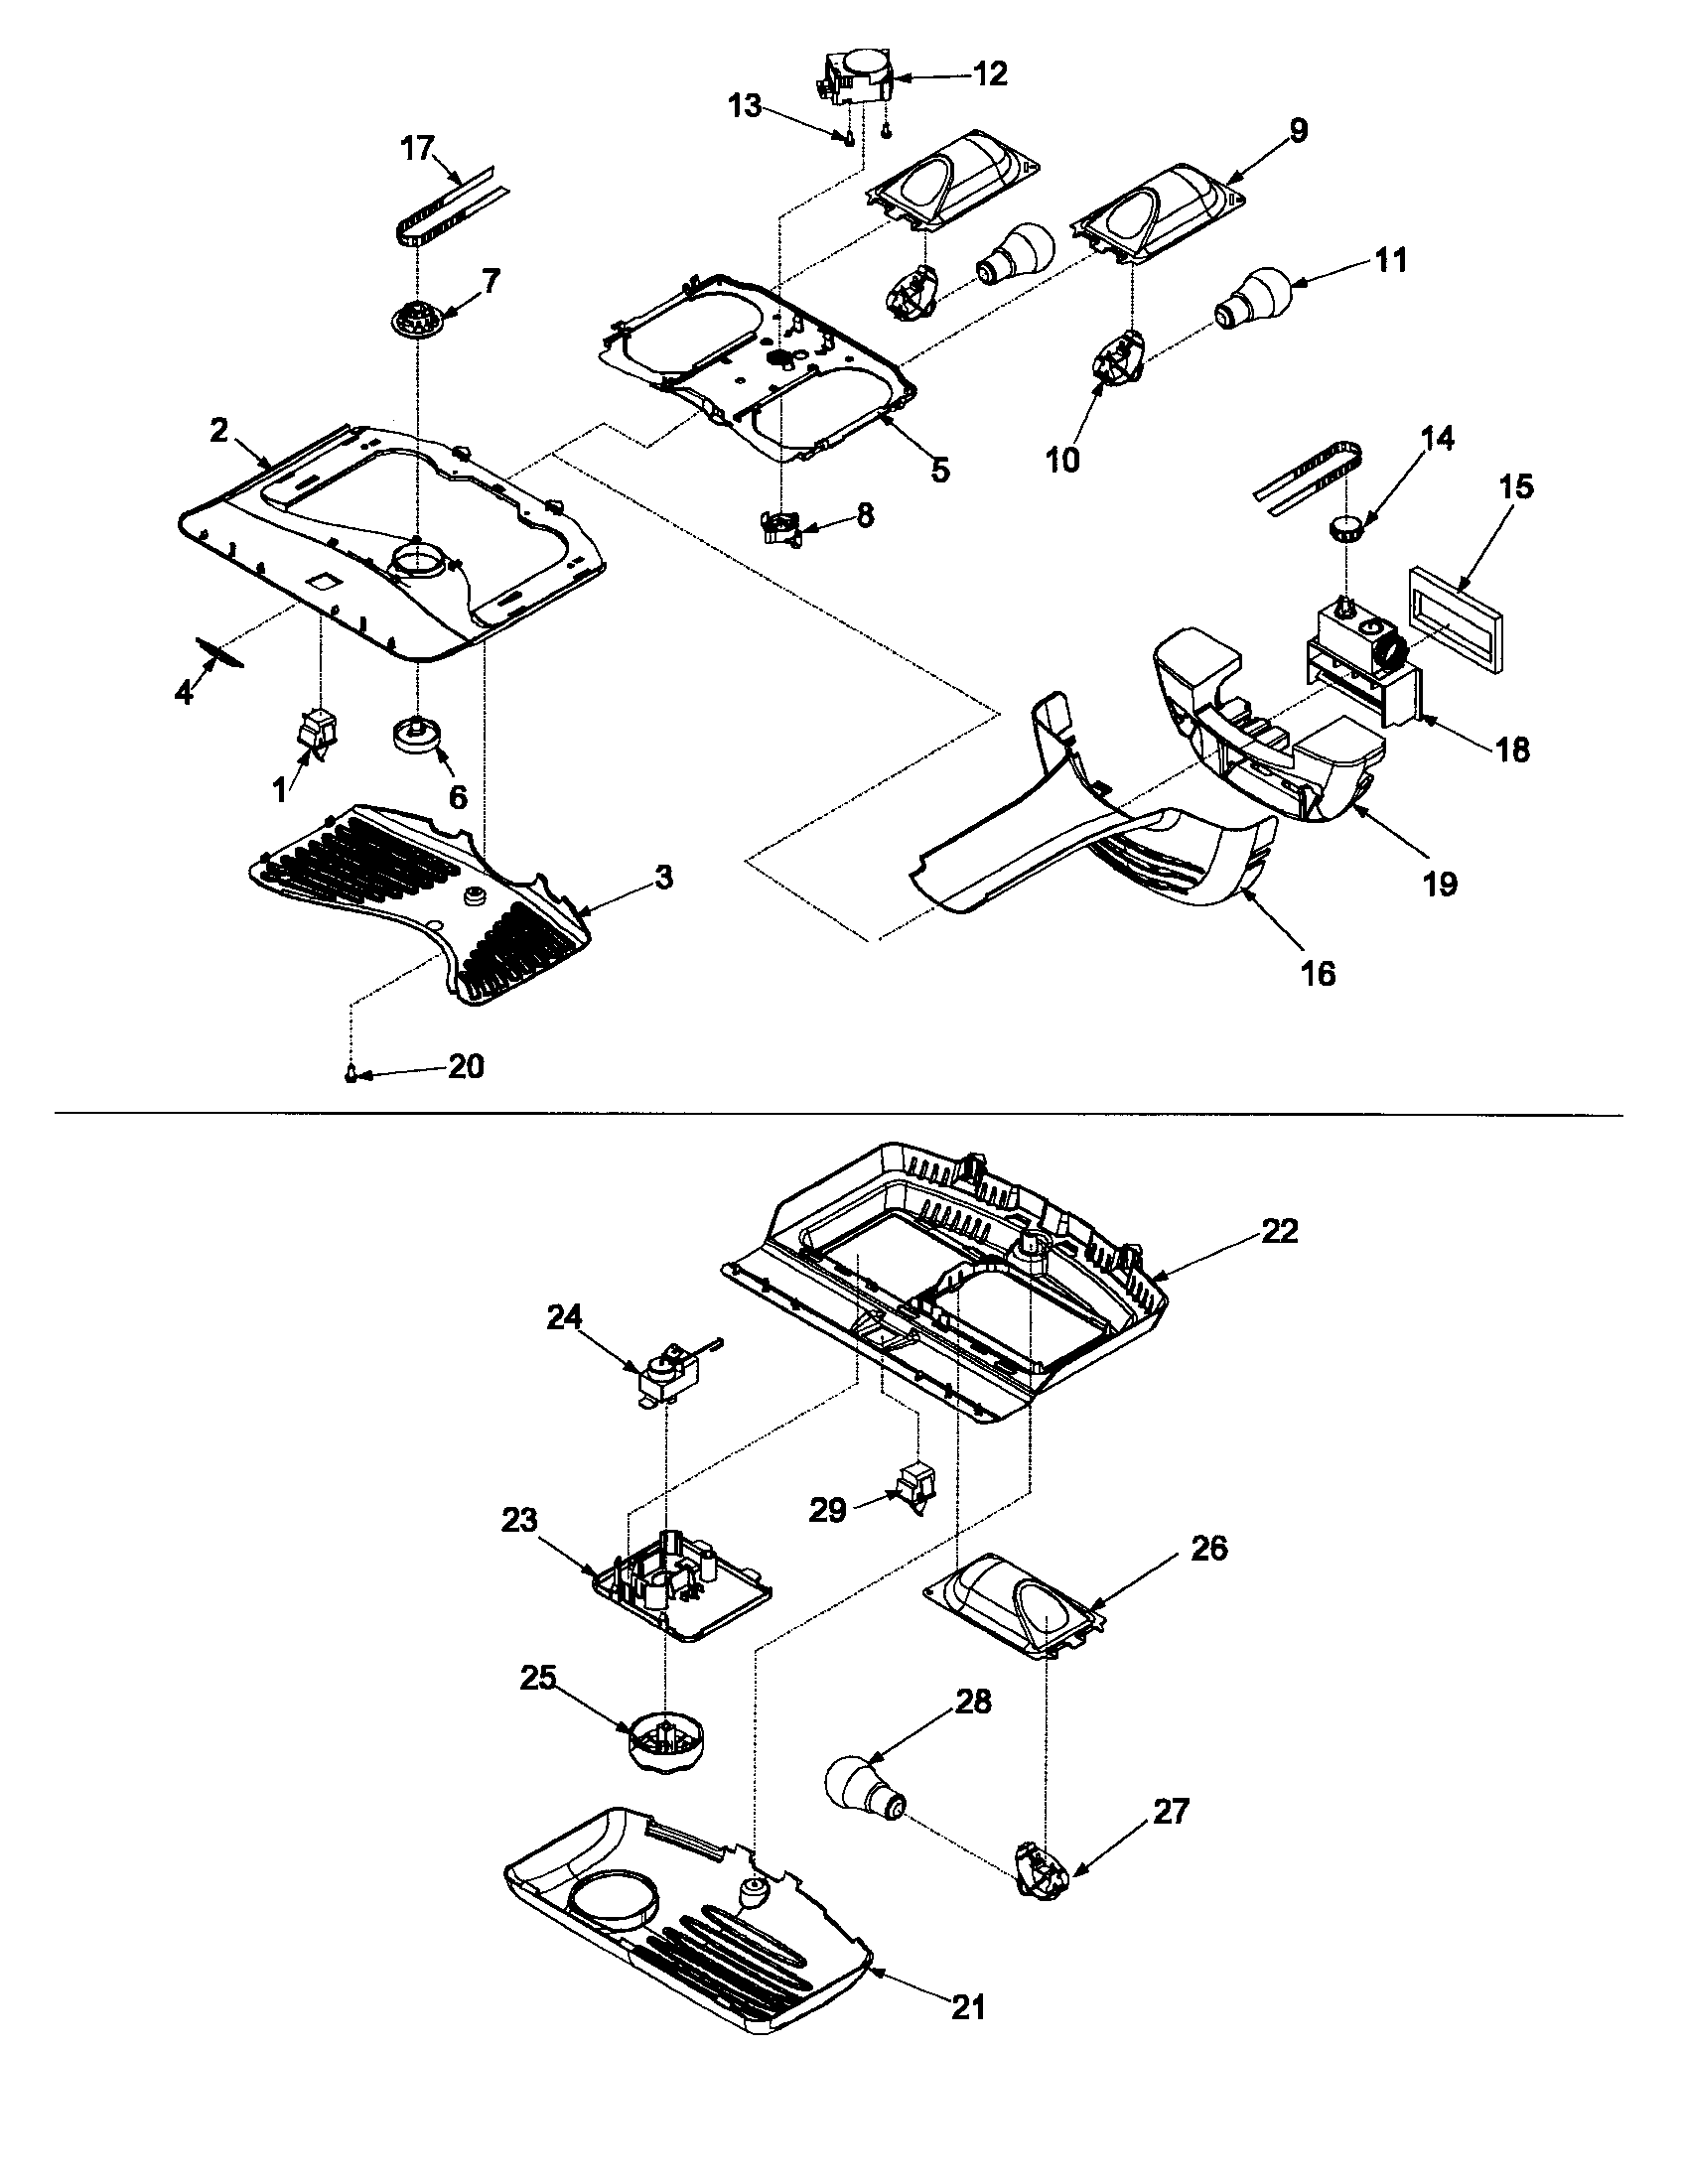 SOLVED: Compressor problem, installing the Supco 3-in-1 Re